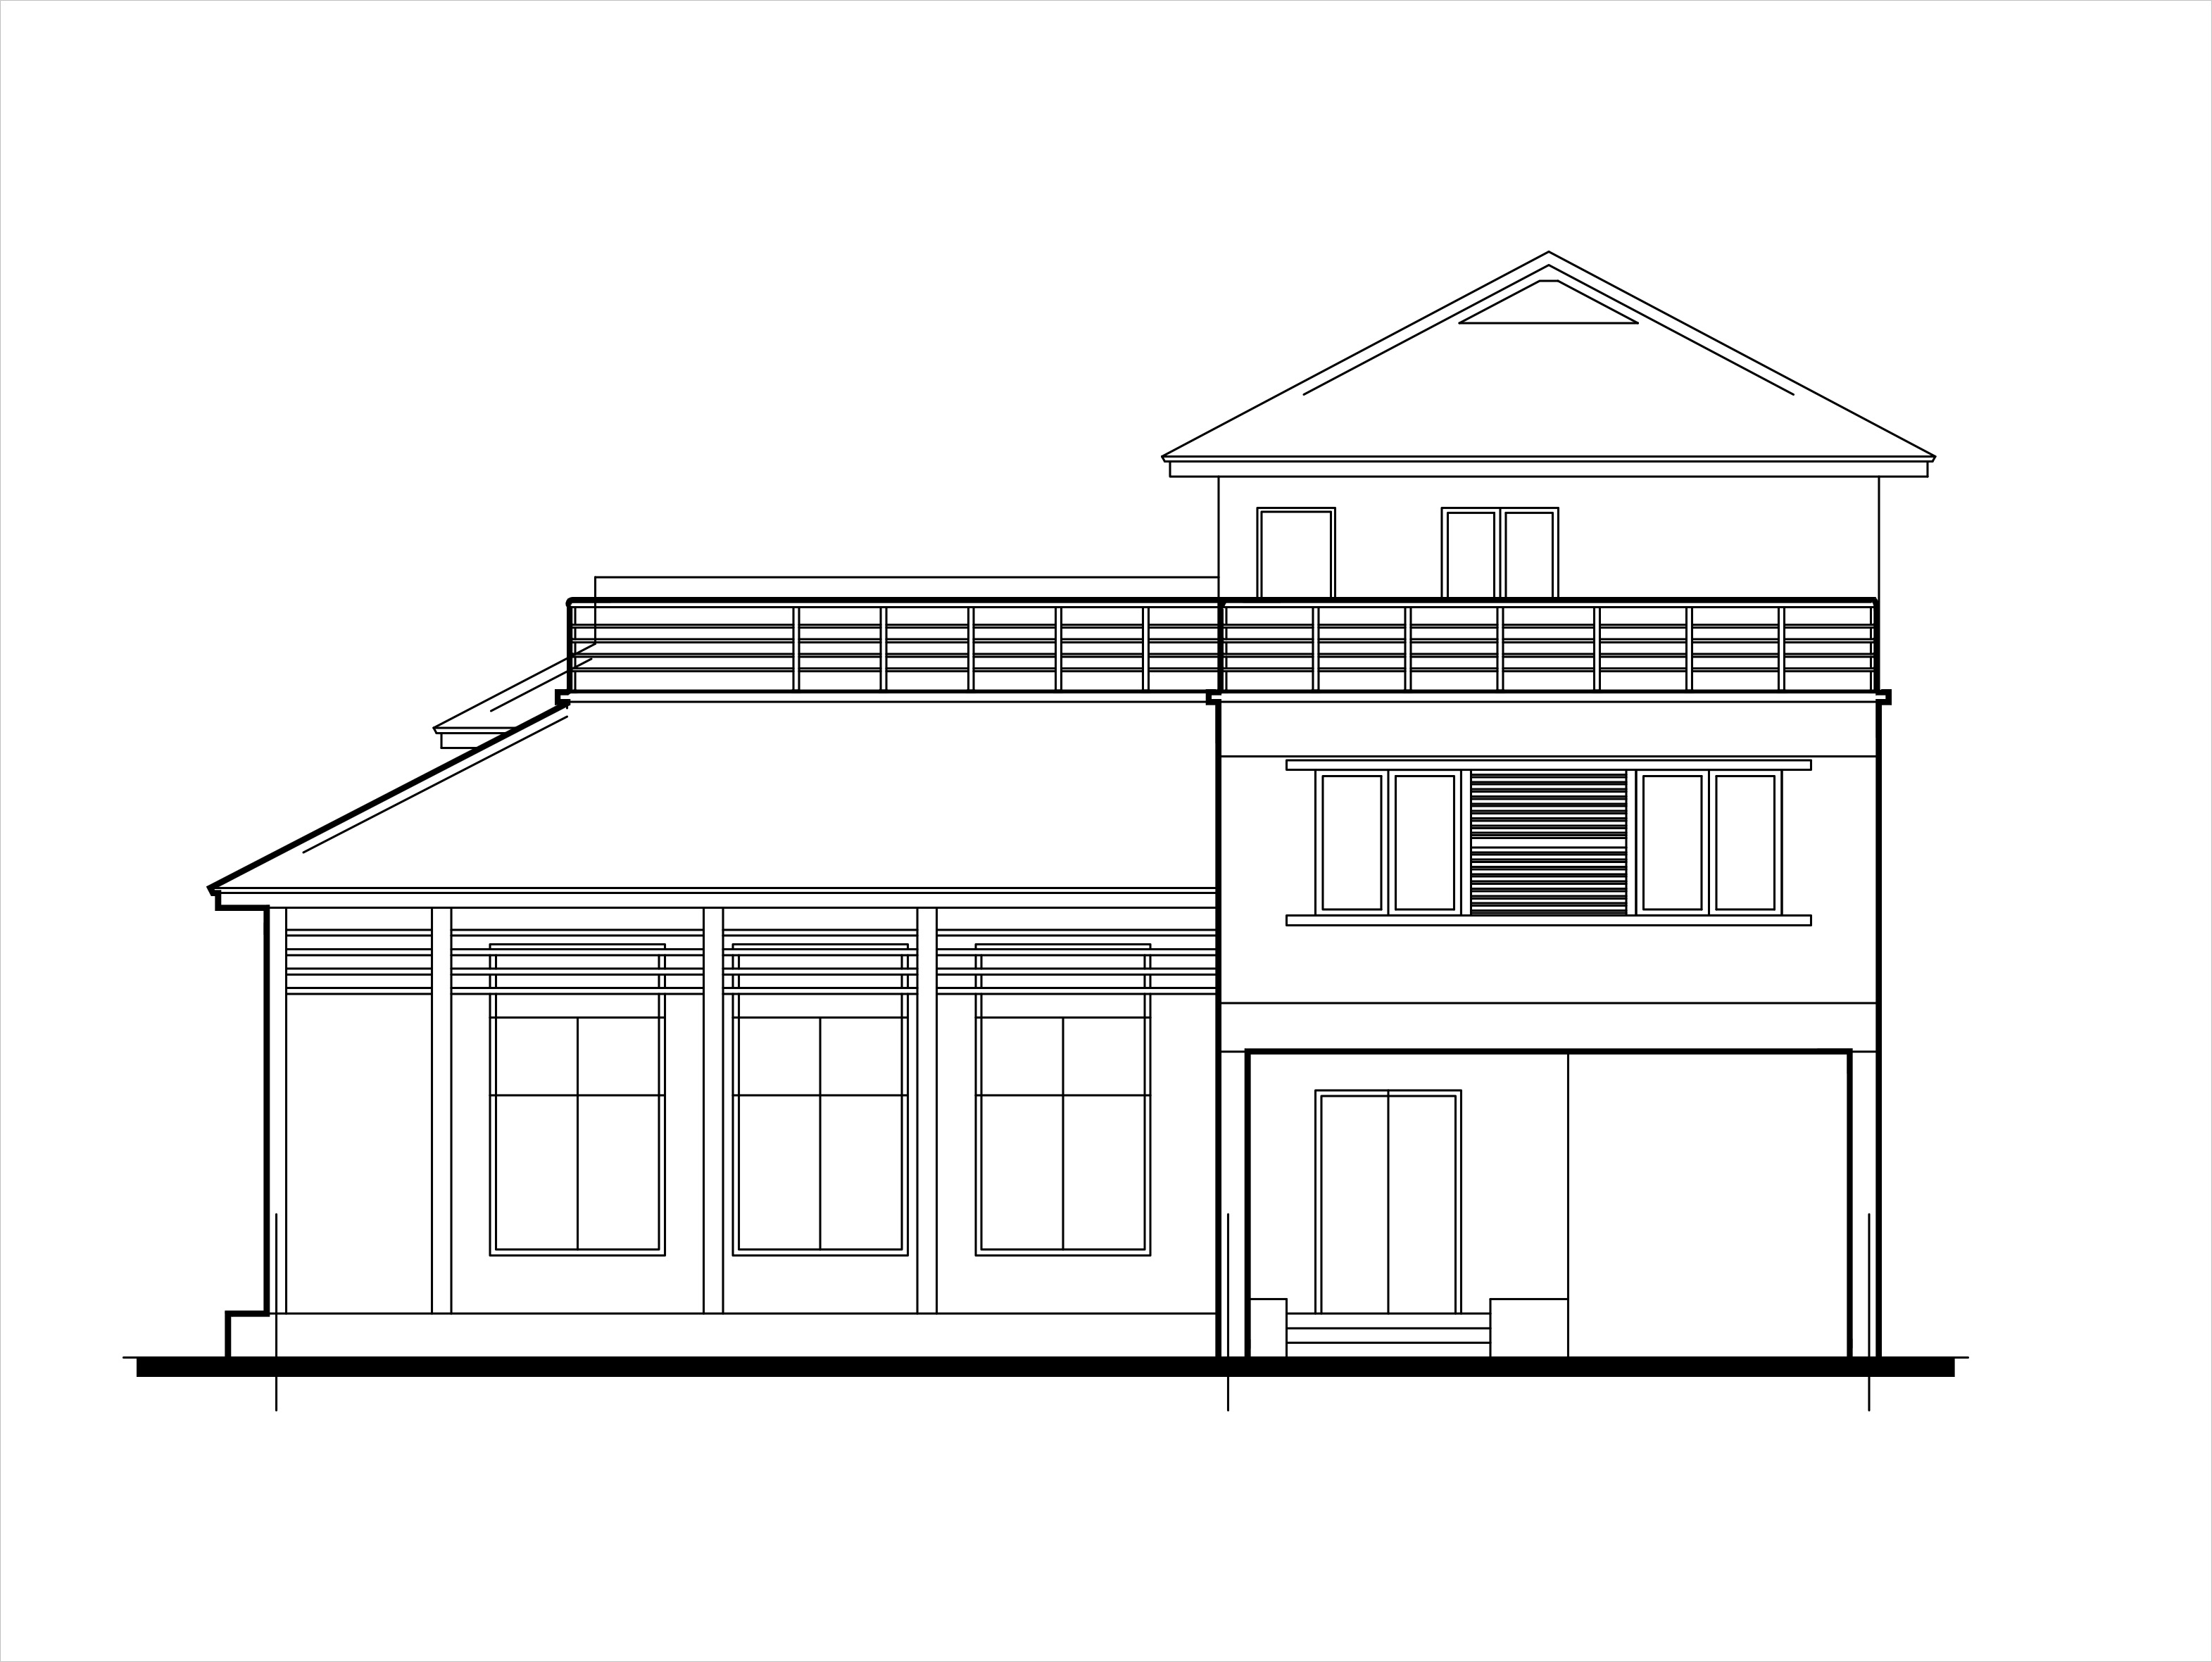 http://www.dwgnet.com/wp-content/uploads/2017/02/Double-story-low-cost-house-plans-front-elevation.jpg